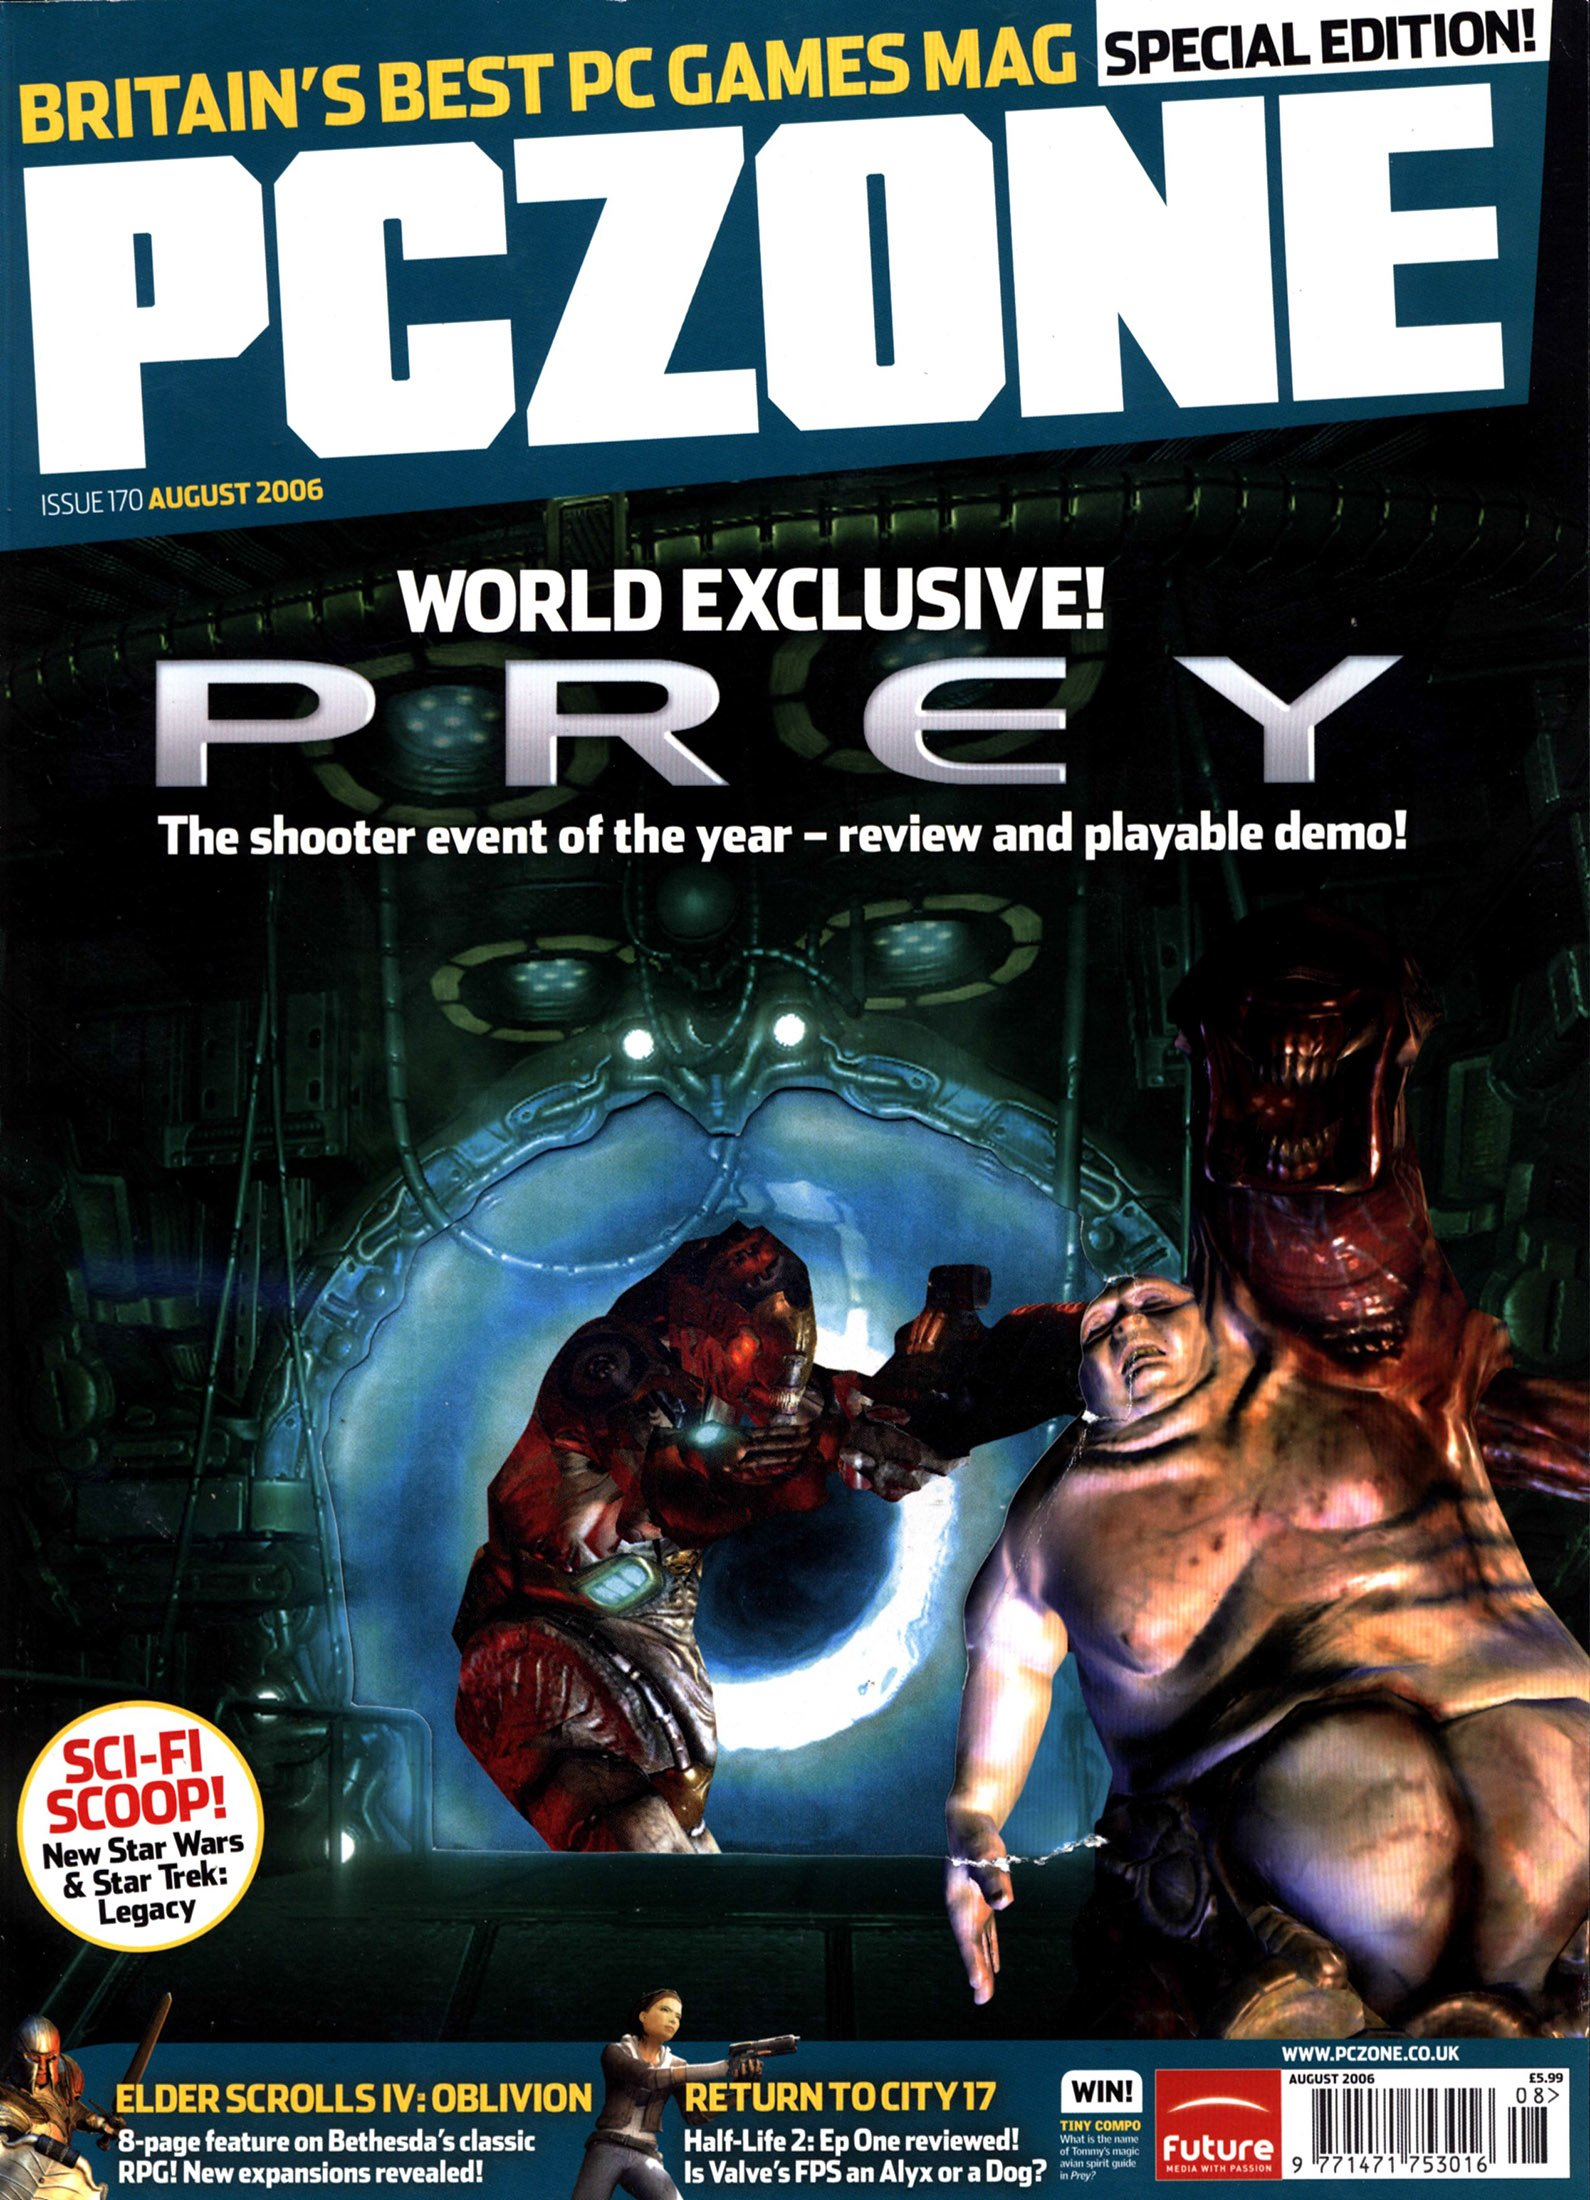 PC Zone Issue 170 (August 2006)